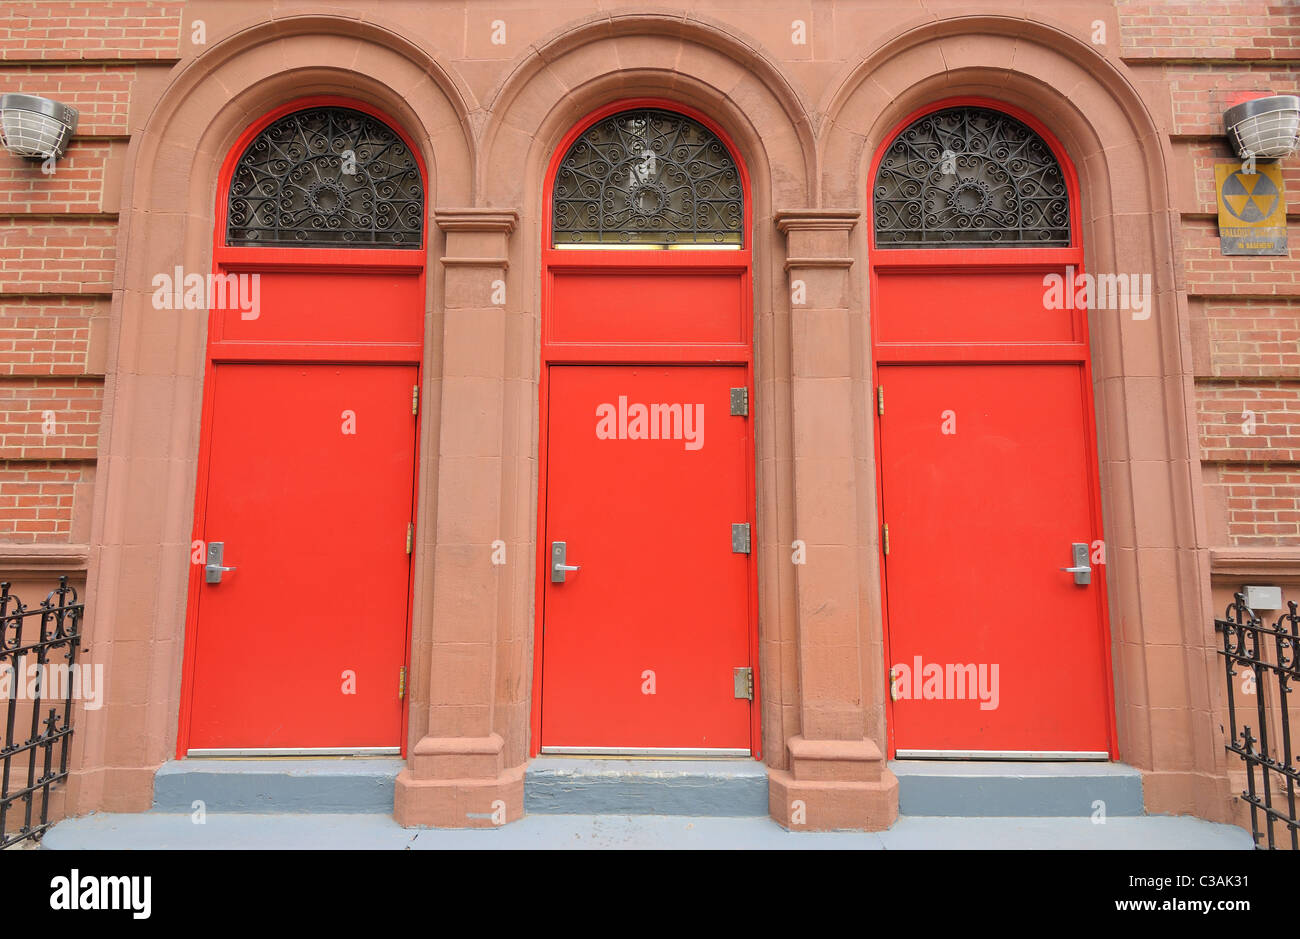 Three red doors at the entrance of a building. - Stock Image